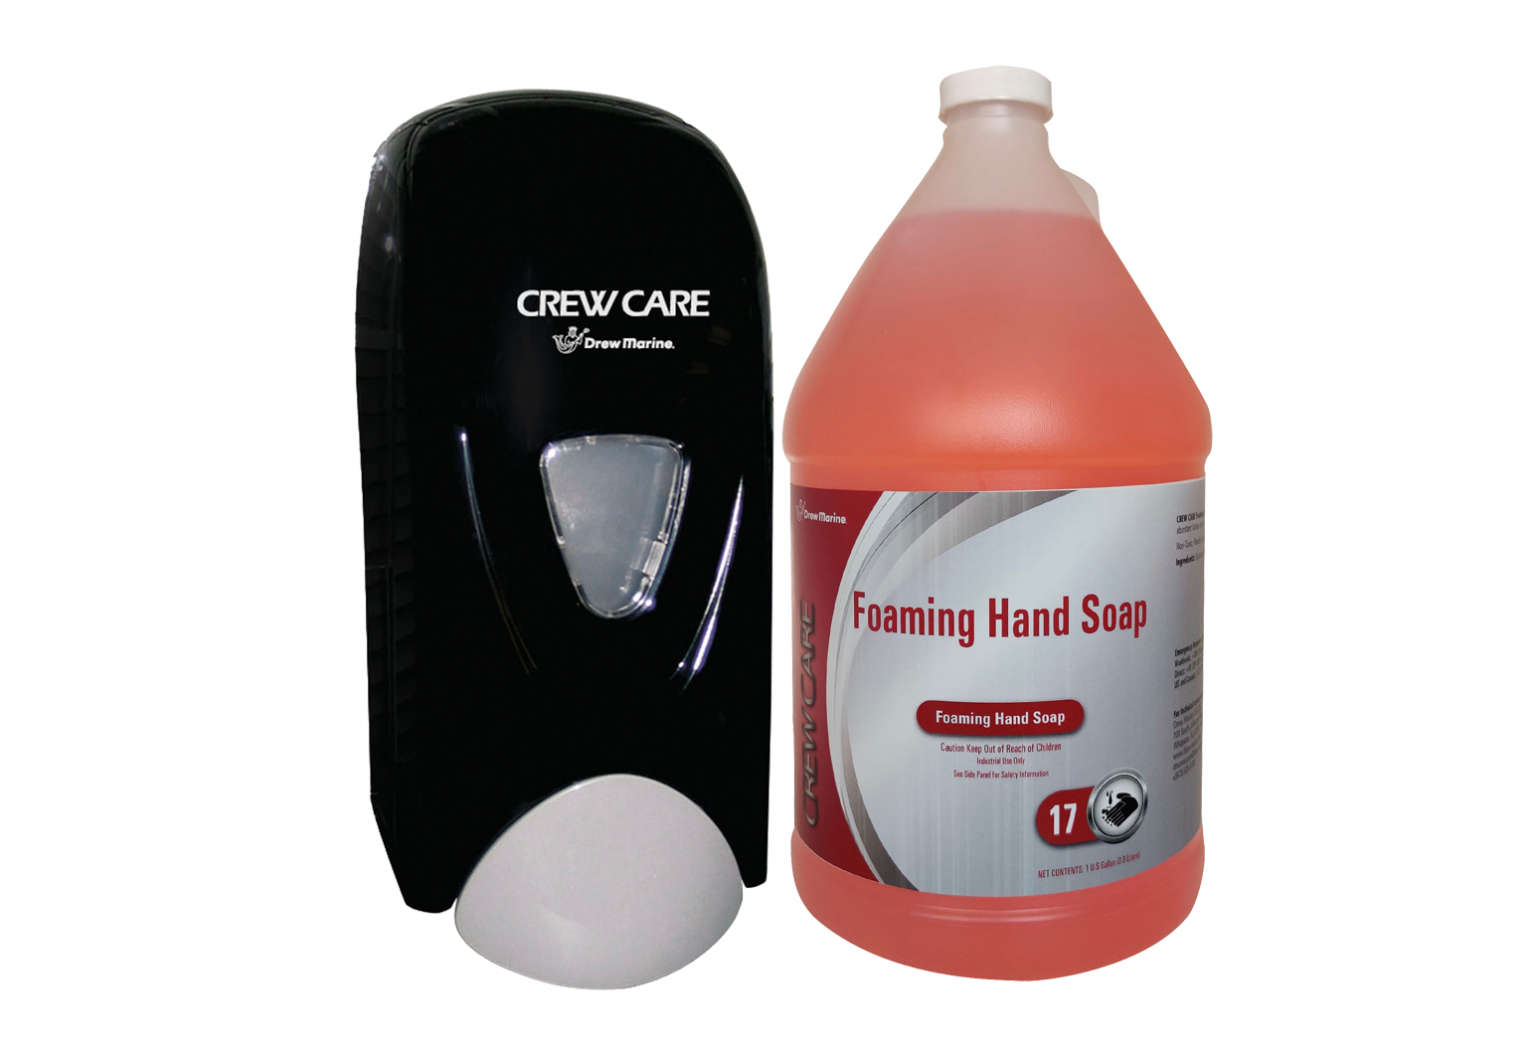 foaming_hand_soap_1544x1062.png